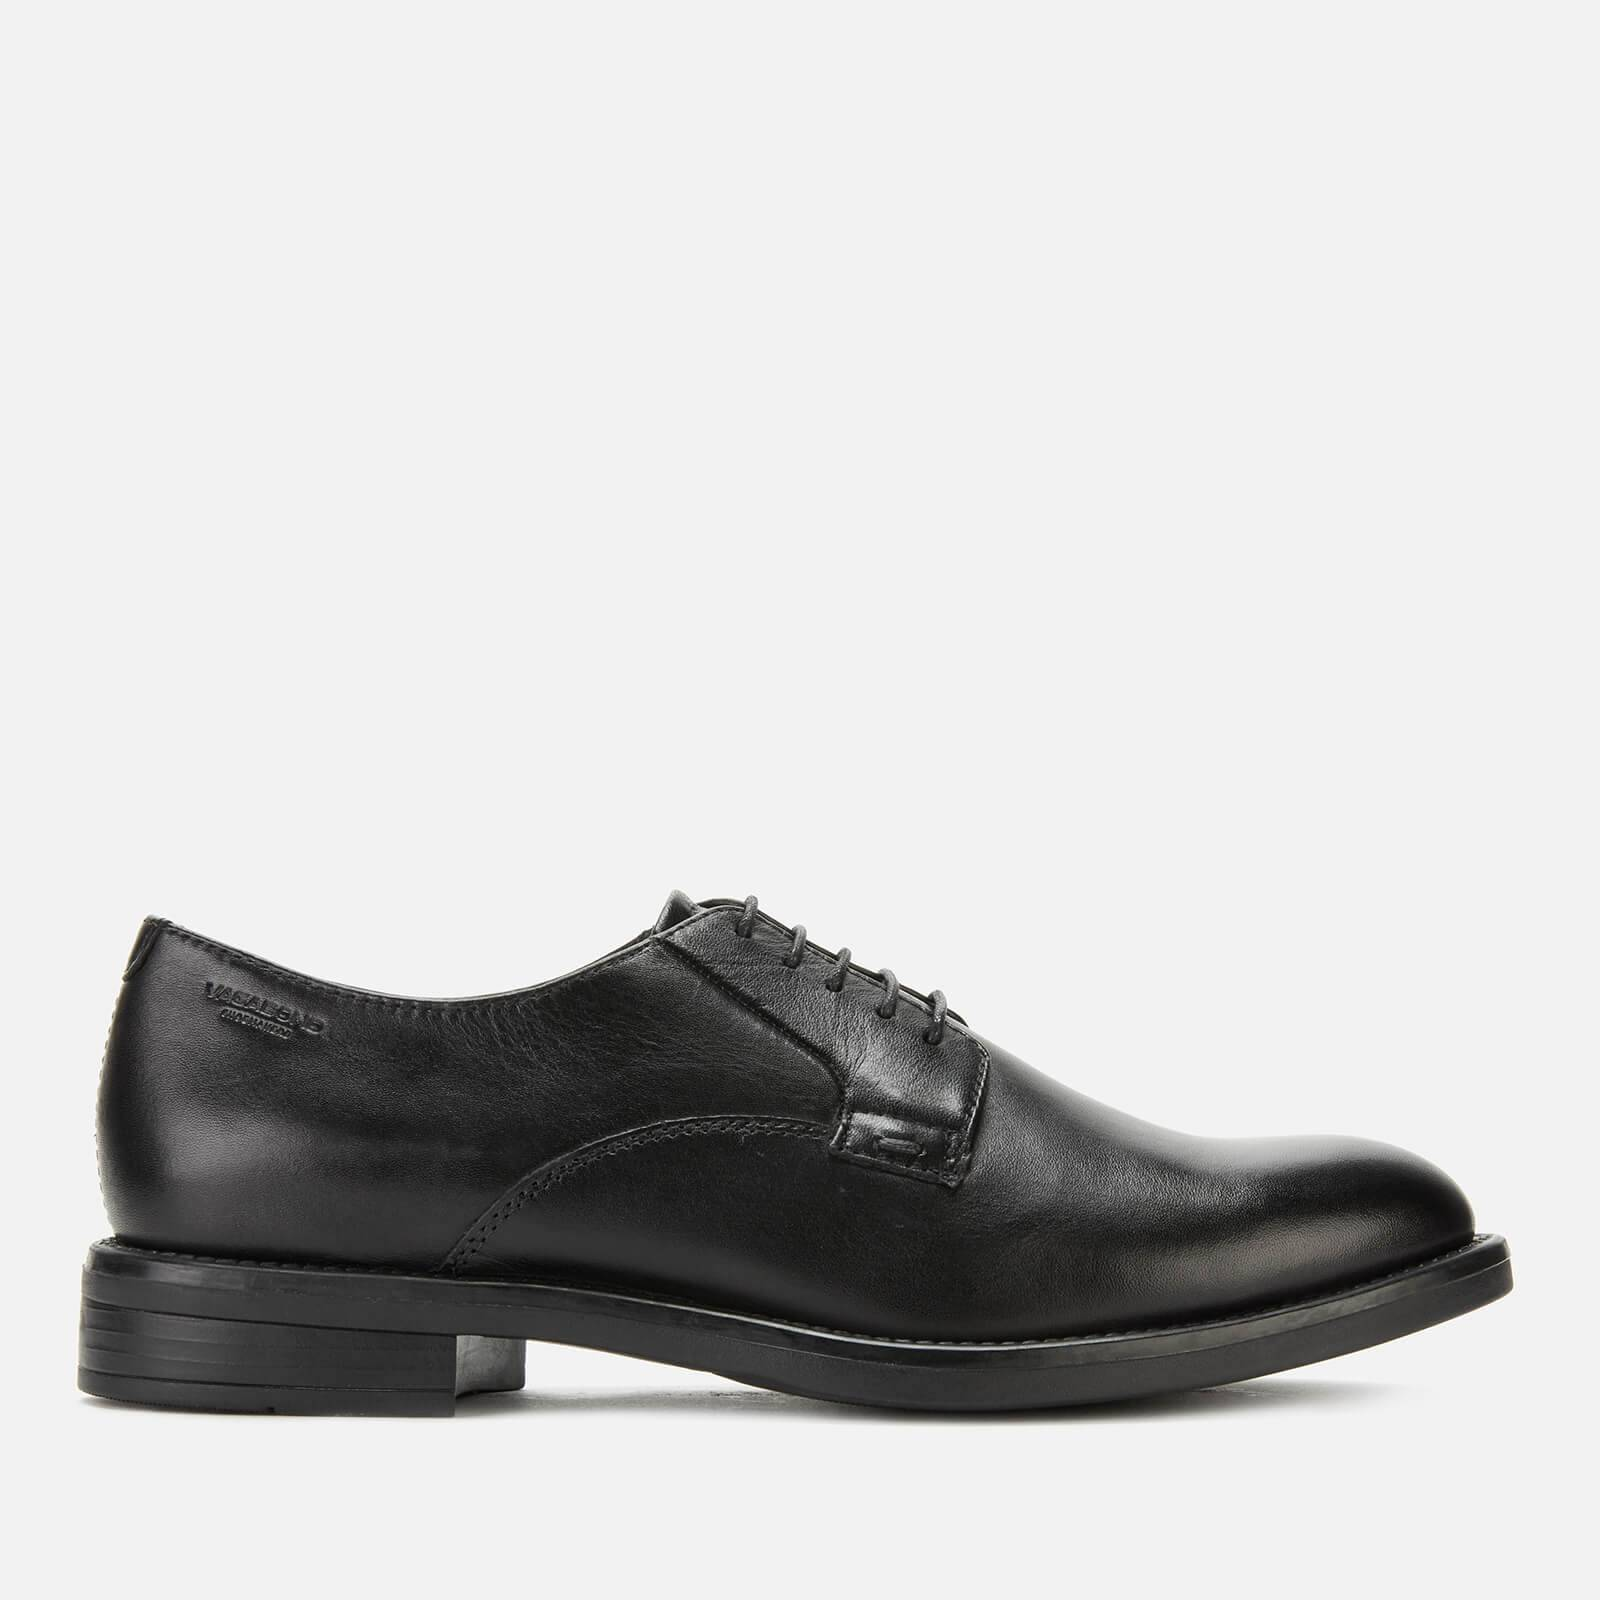 Vagabond Women's Amina Leather Derby Shoes - Black - UK 6 - Black